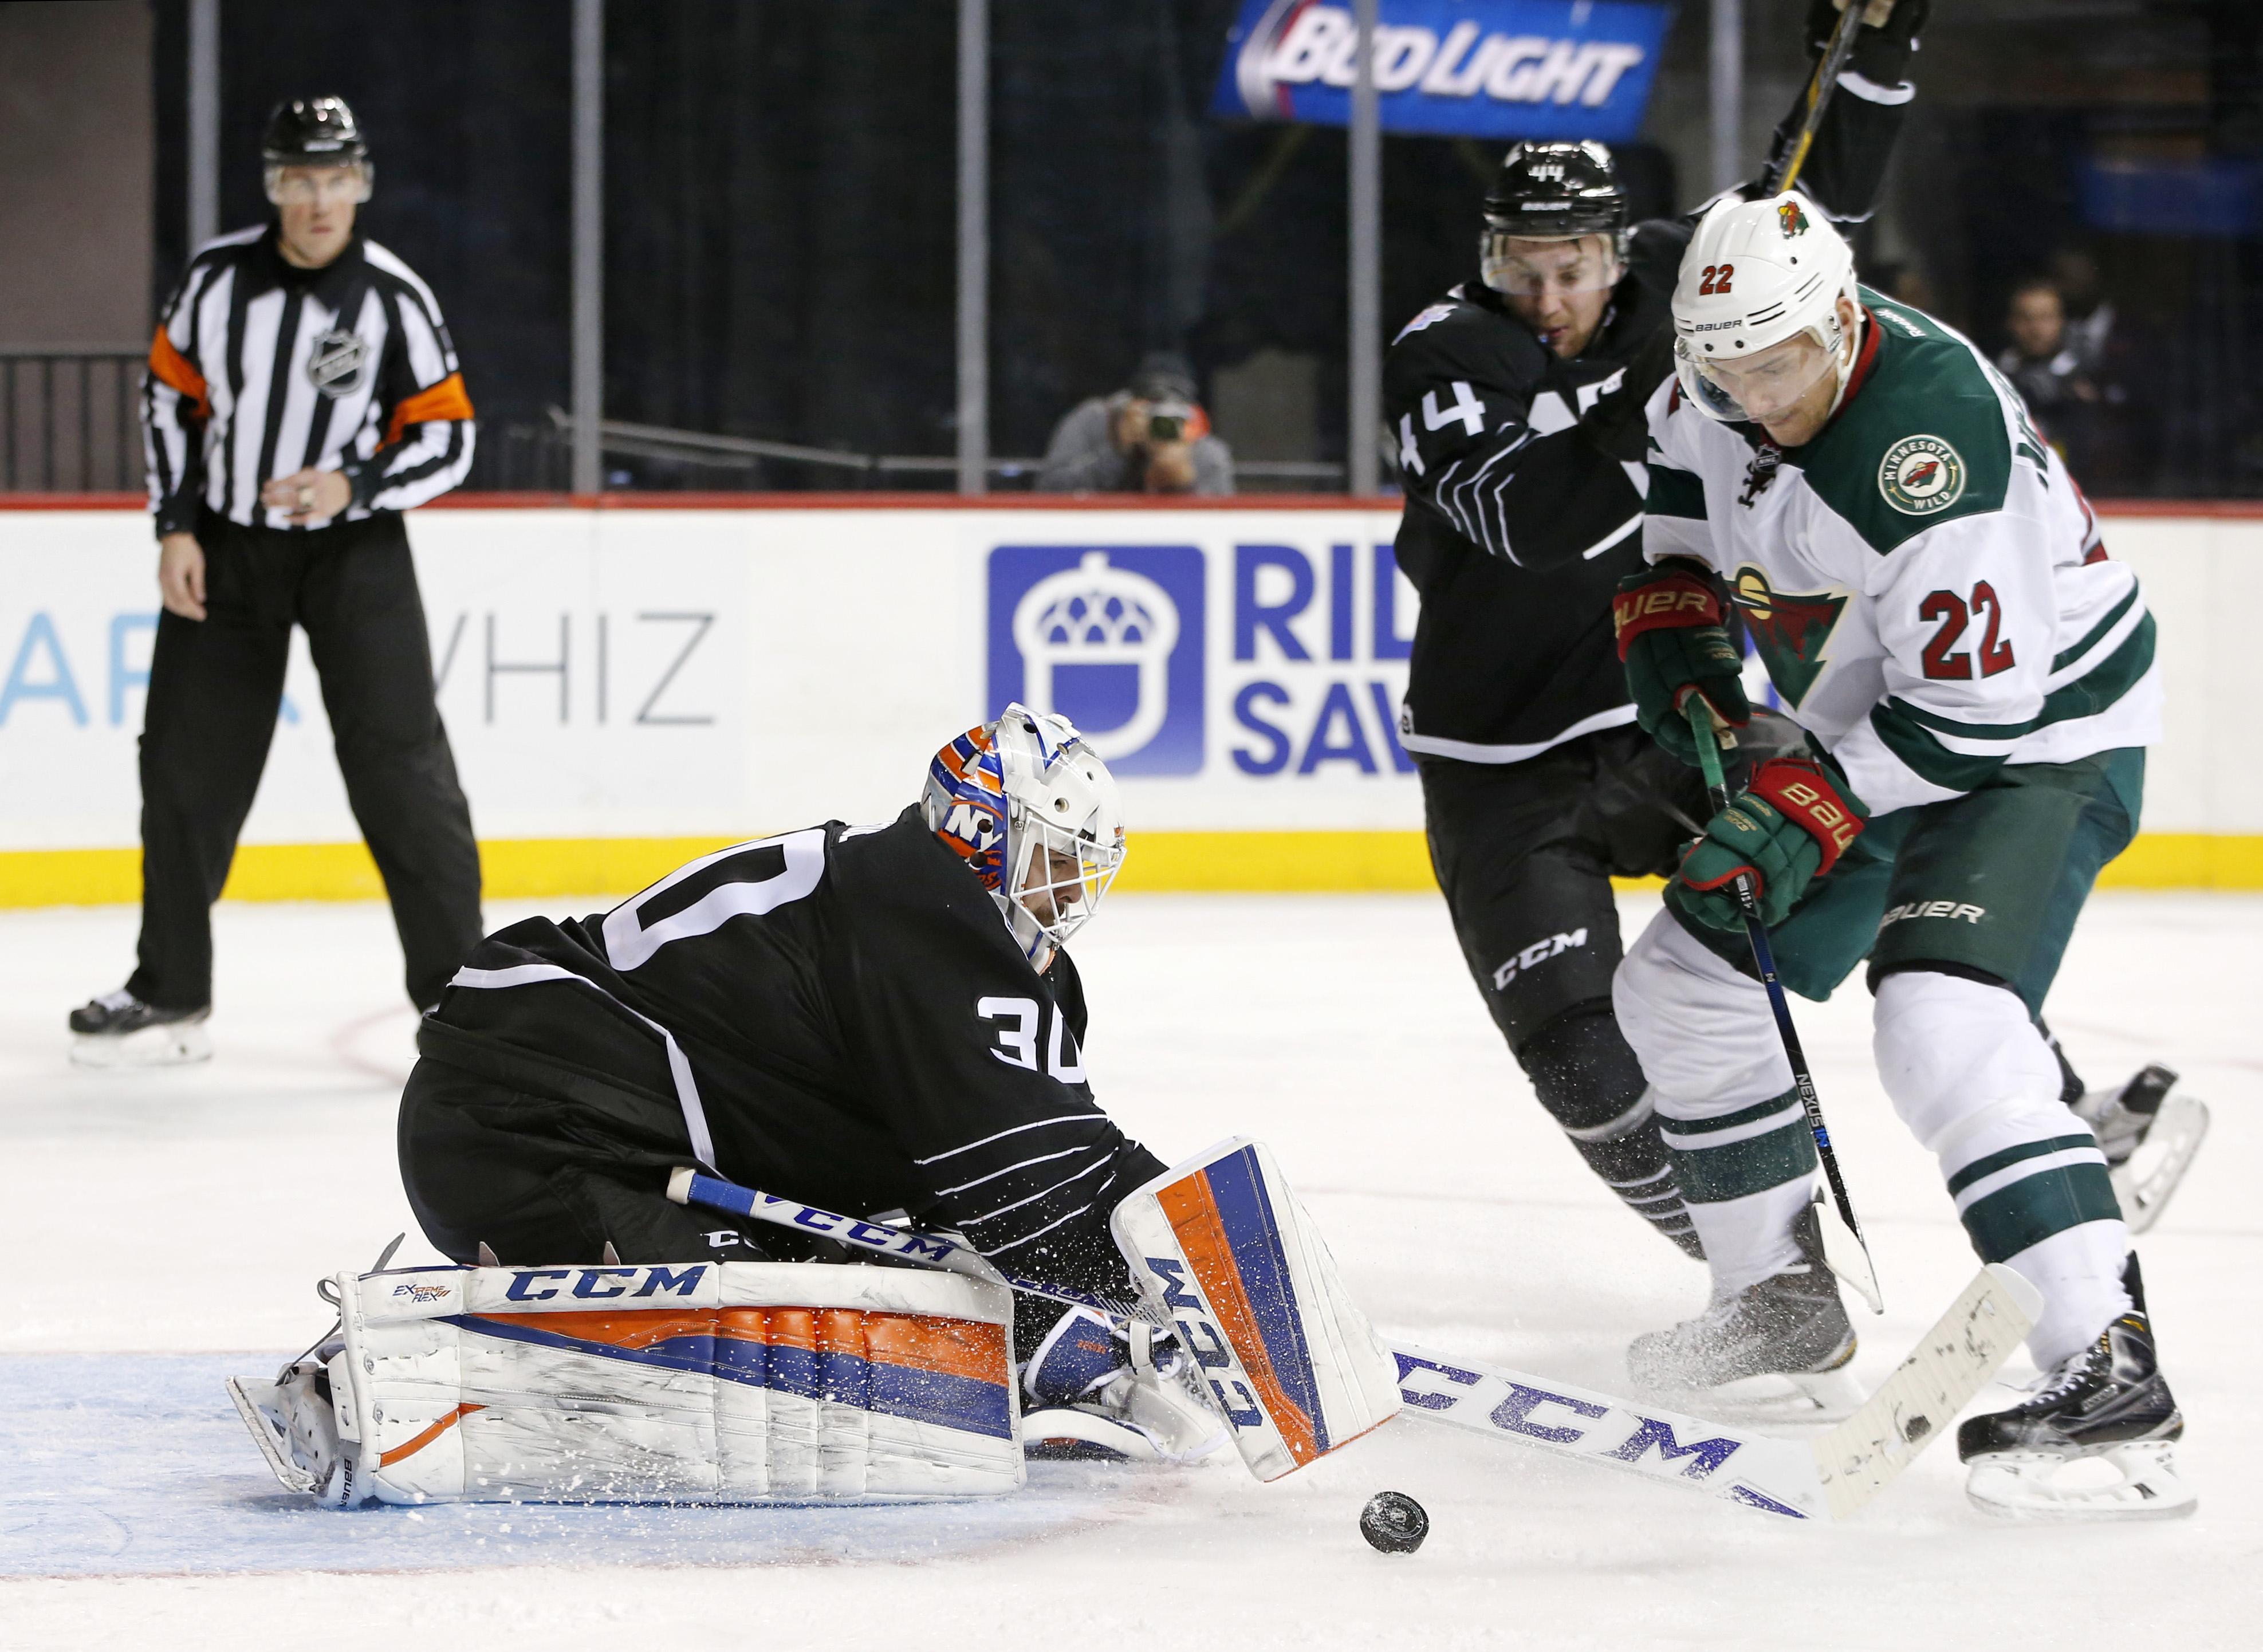 New York Islanders goalie Jean-Francois Berube (30) makes a save as defenseman Calvin de Haan (44) tries to defend Minnesota Wild right wing Nino Niederreiter (22) during the third period of an NHL hockey game in New York, Tuesday, Feb. 2, 2016. The Islan